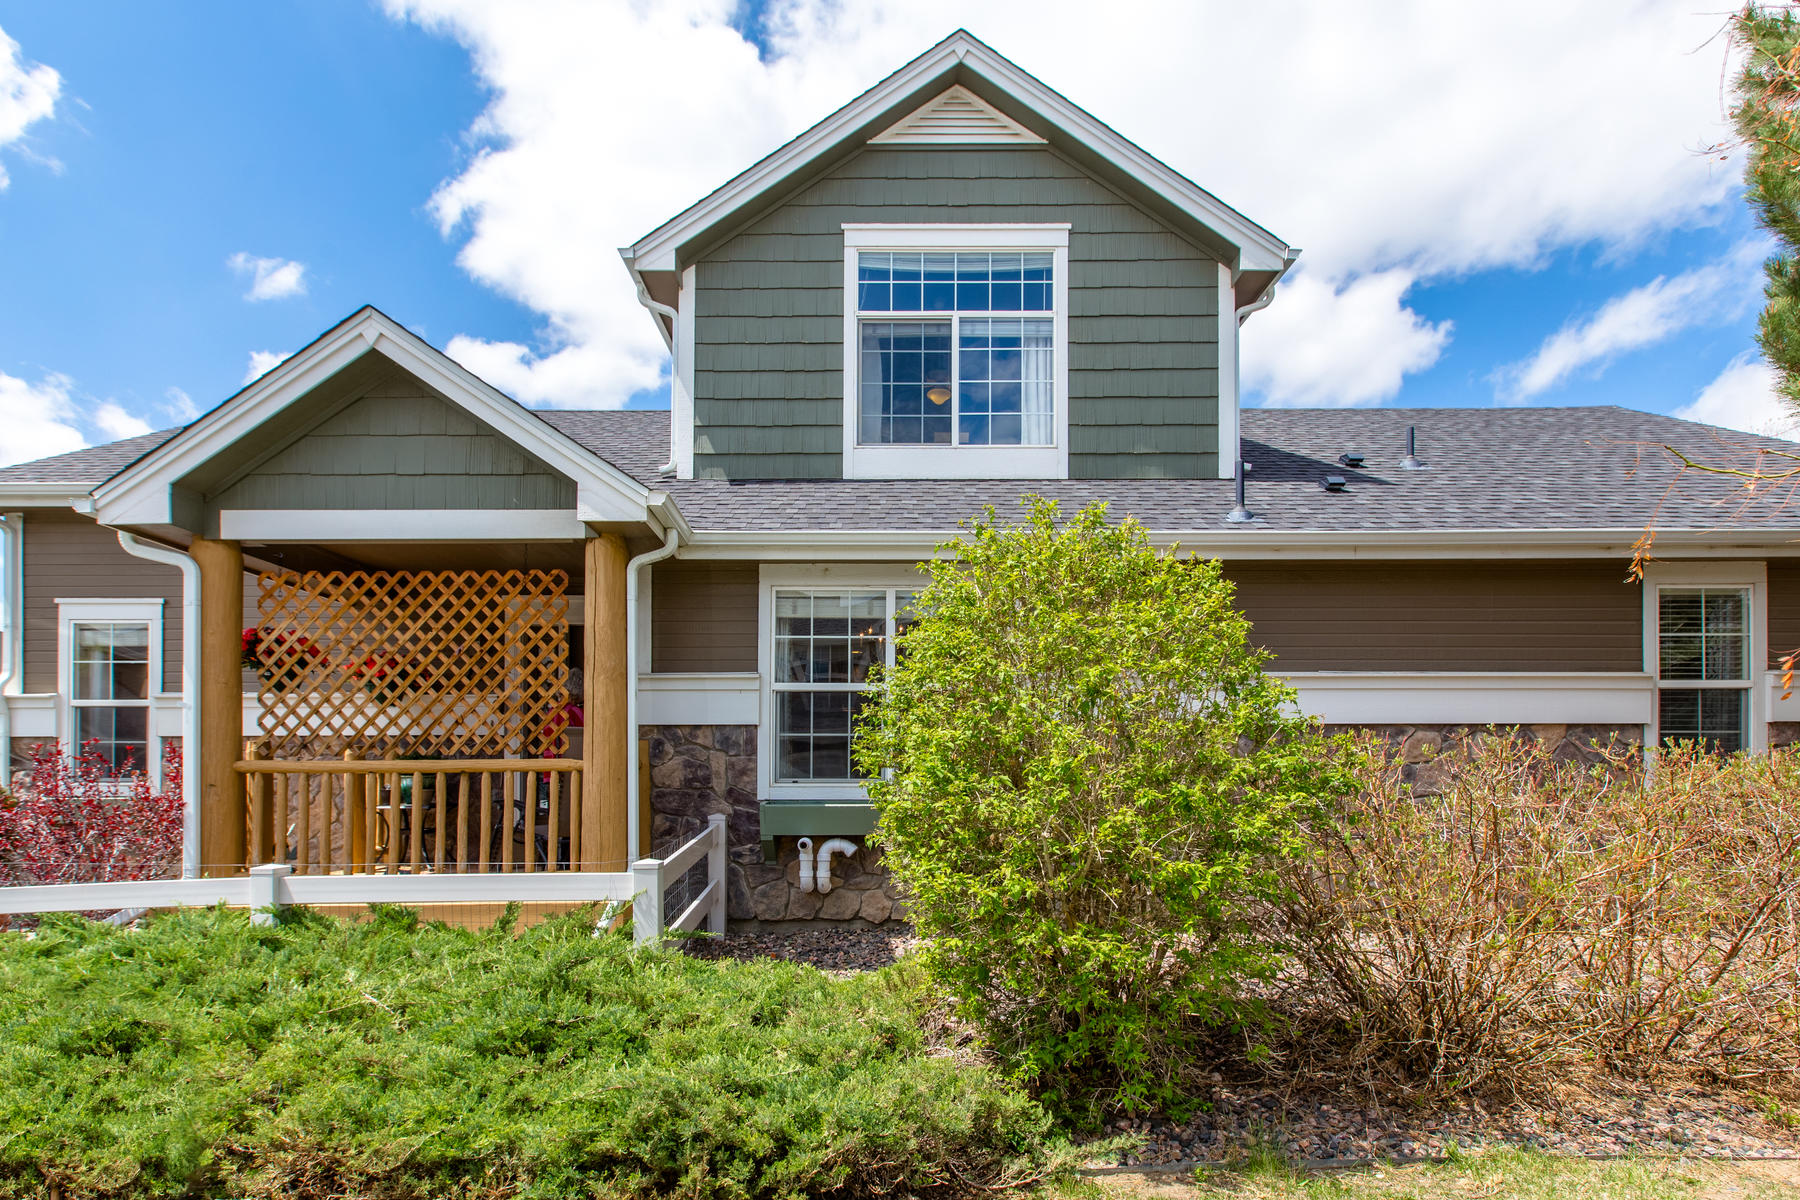 townhouses for Sale at So Many Outdoor Activities To Choose From 229 Rock Bridge Ln Windsor, Colorado 80550 United States